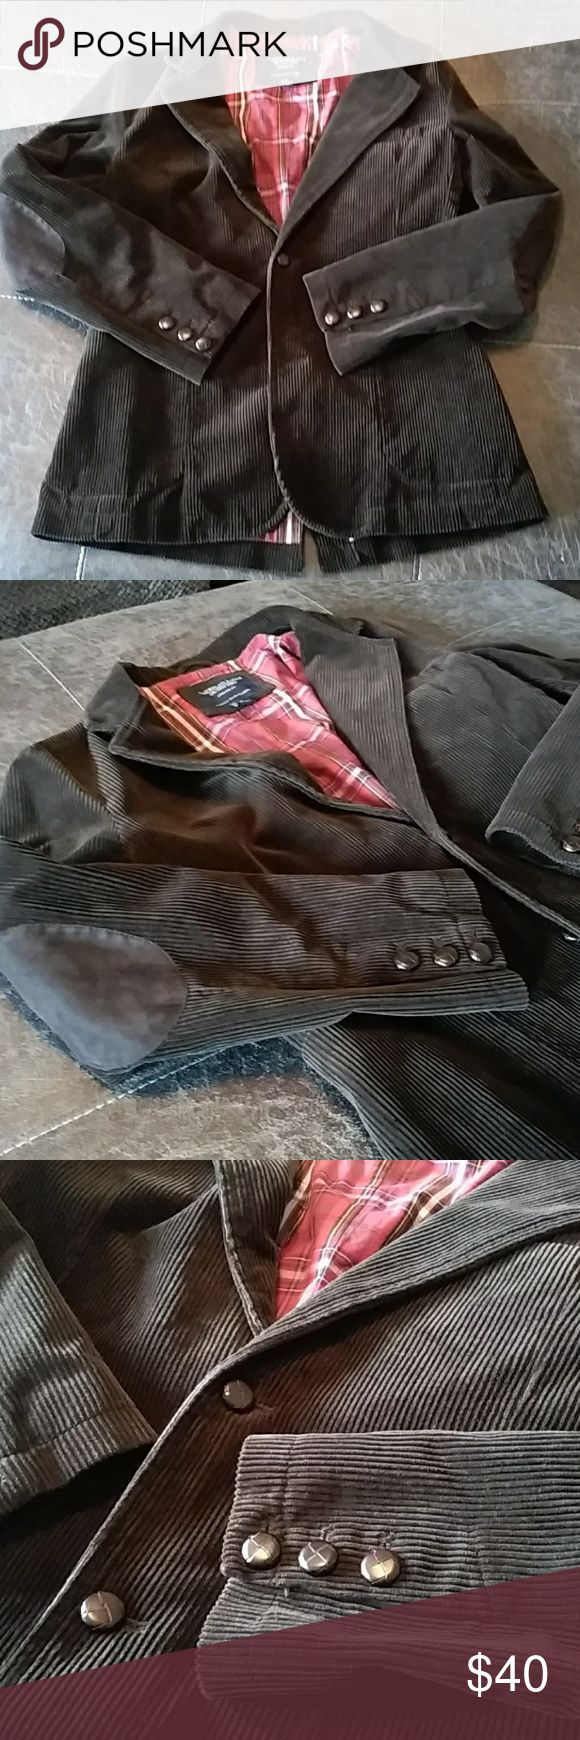 American Eagle Outfitters Mens Blazer Excellent pre-loved condition. Brown color. 100% Cotton. Very comfy and top quality by American Outfitters! Size S American Eagle Outfitters Jackets & Coats